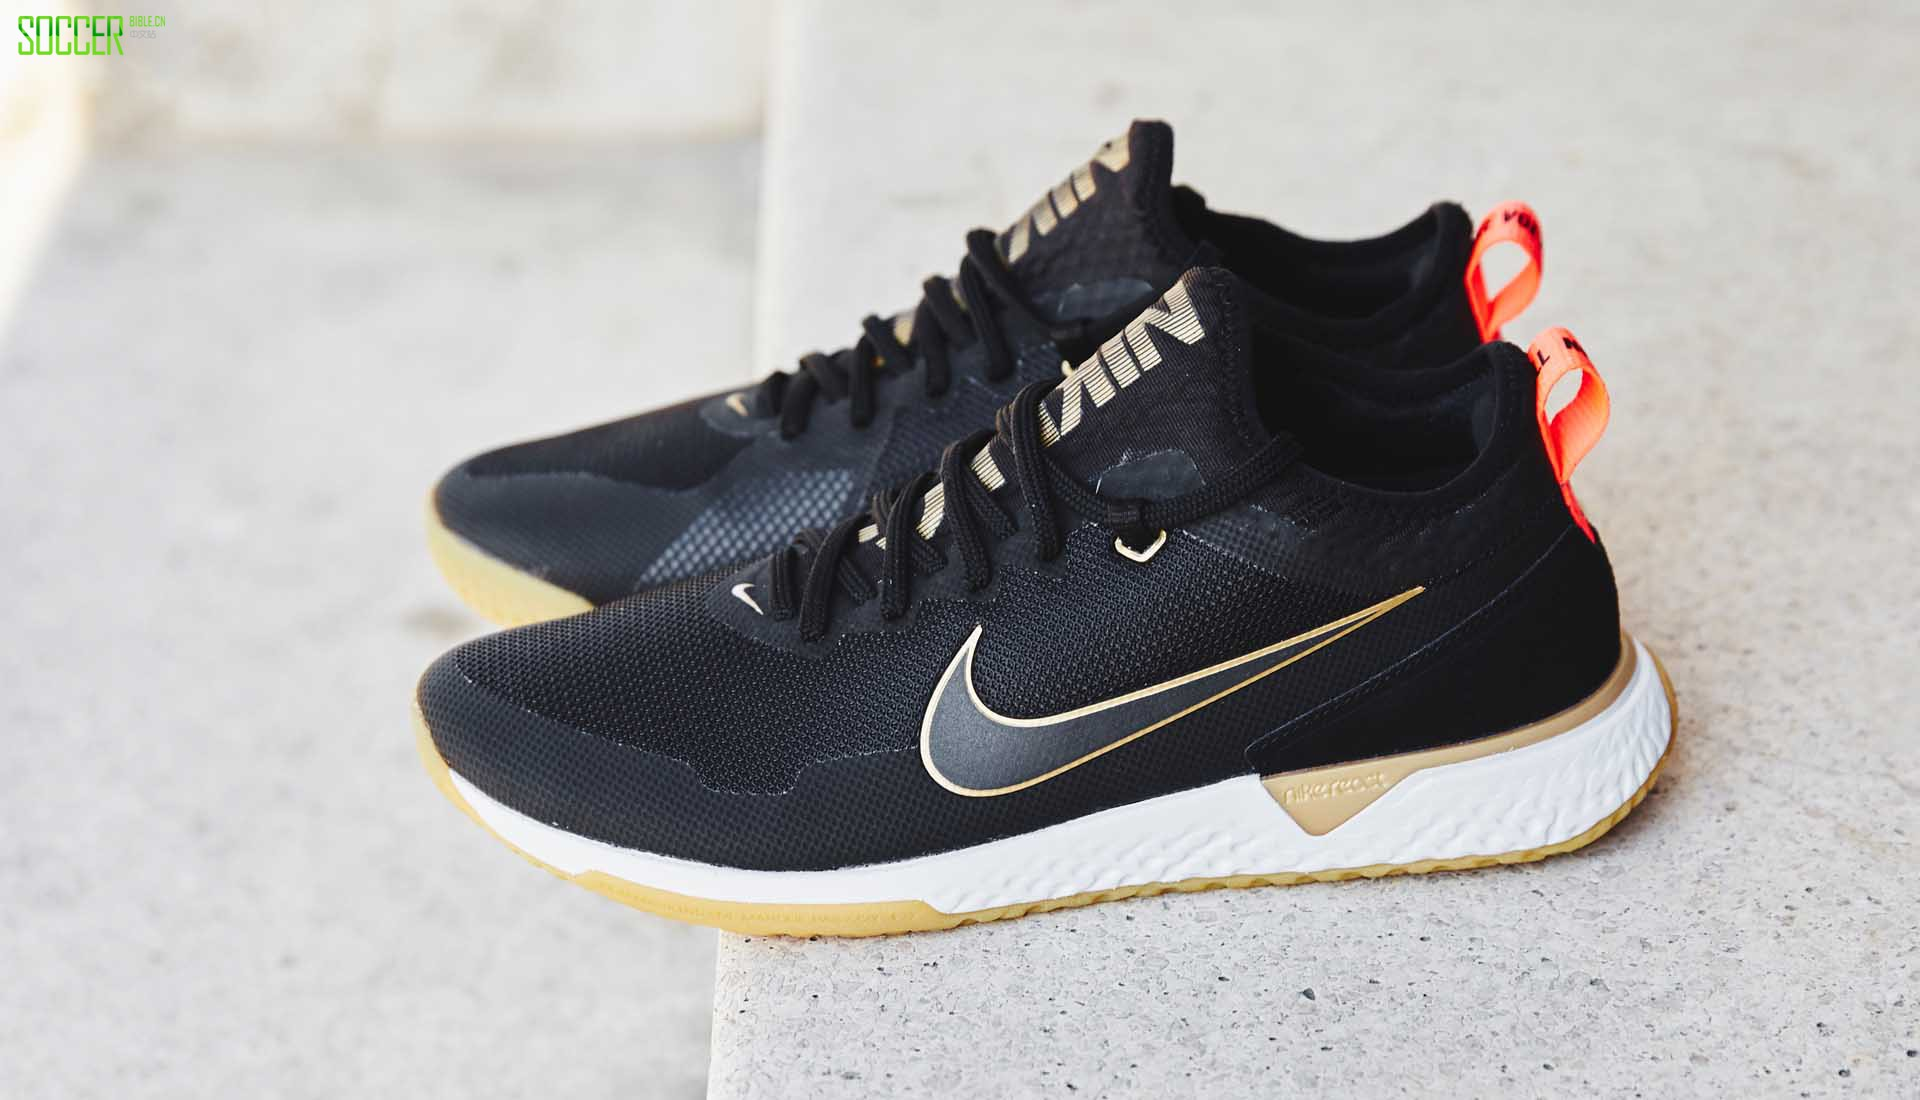 nike-react-gold-black-6-min